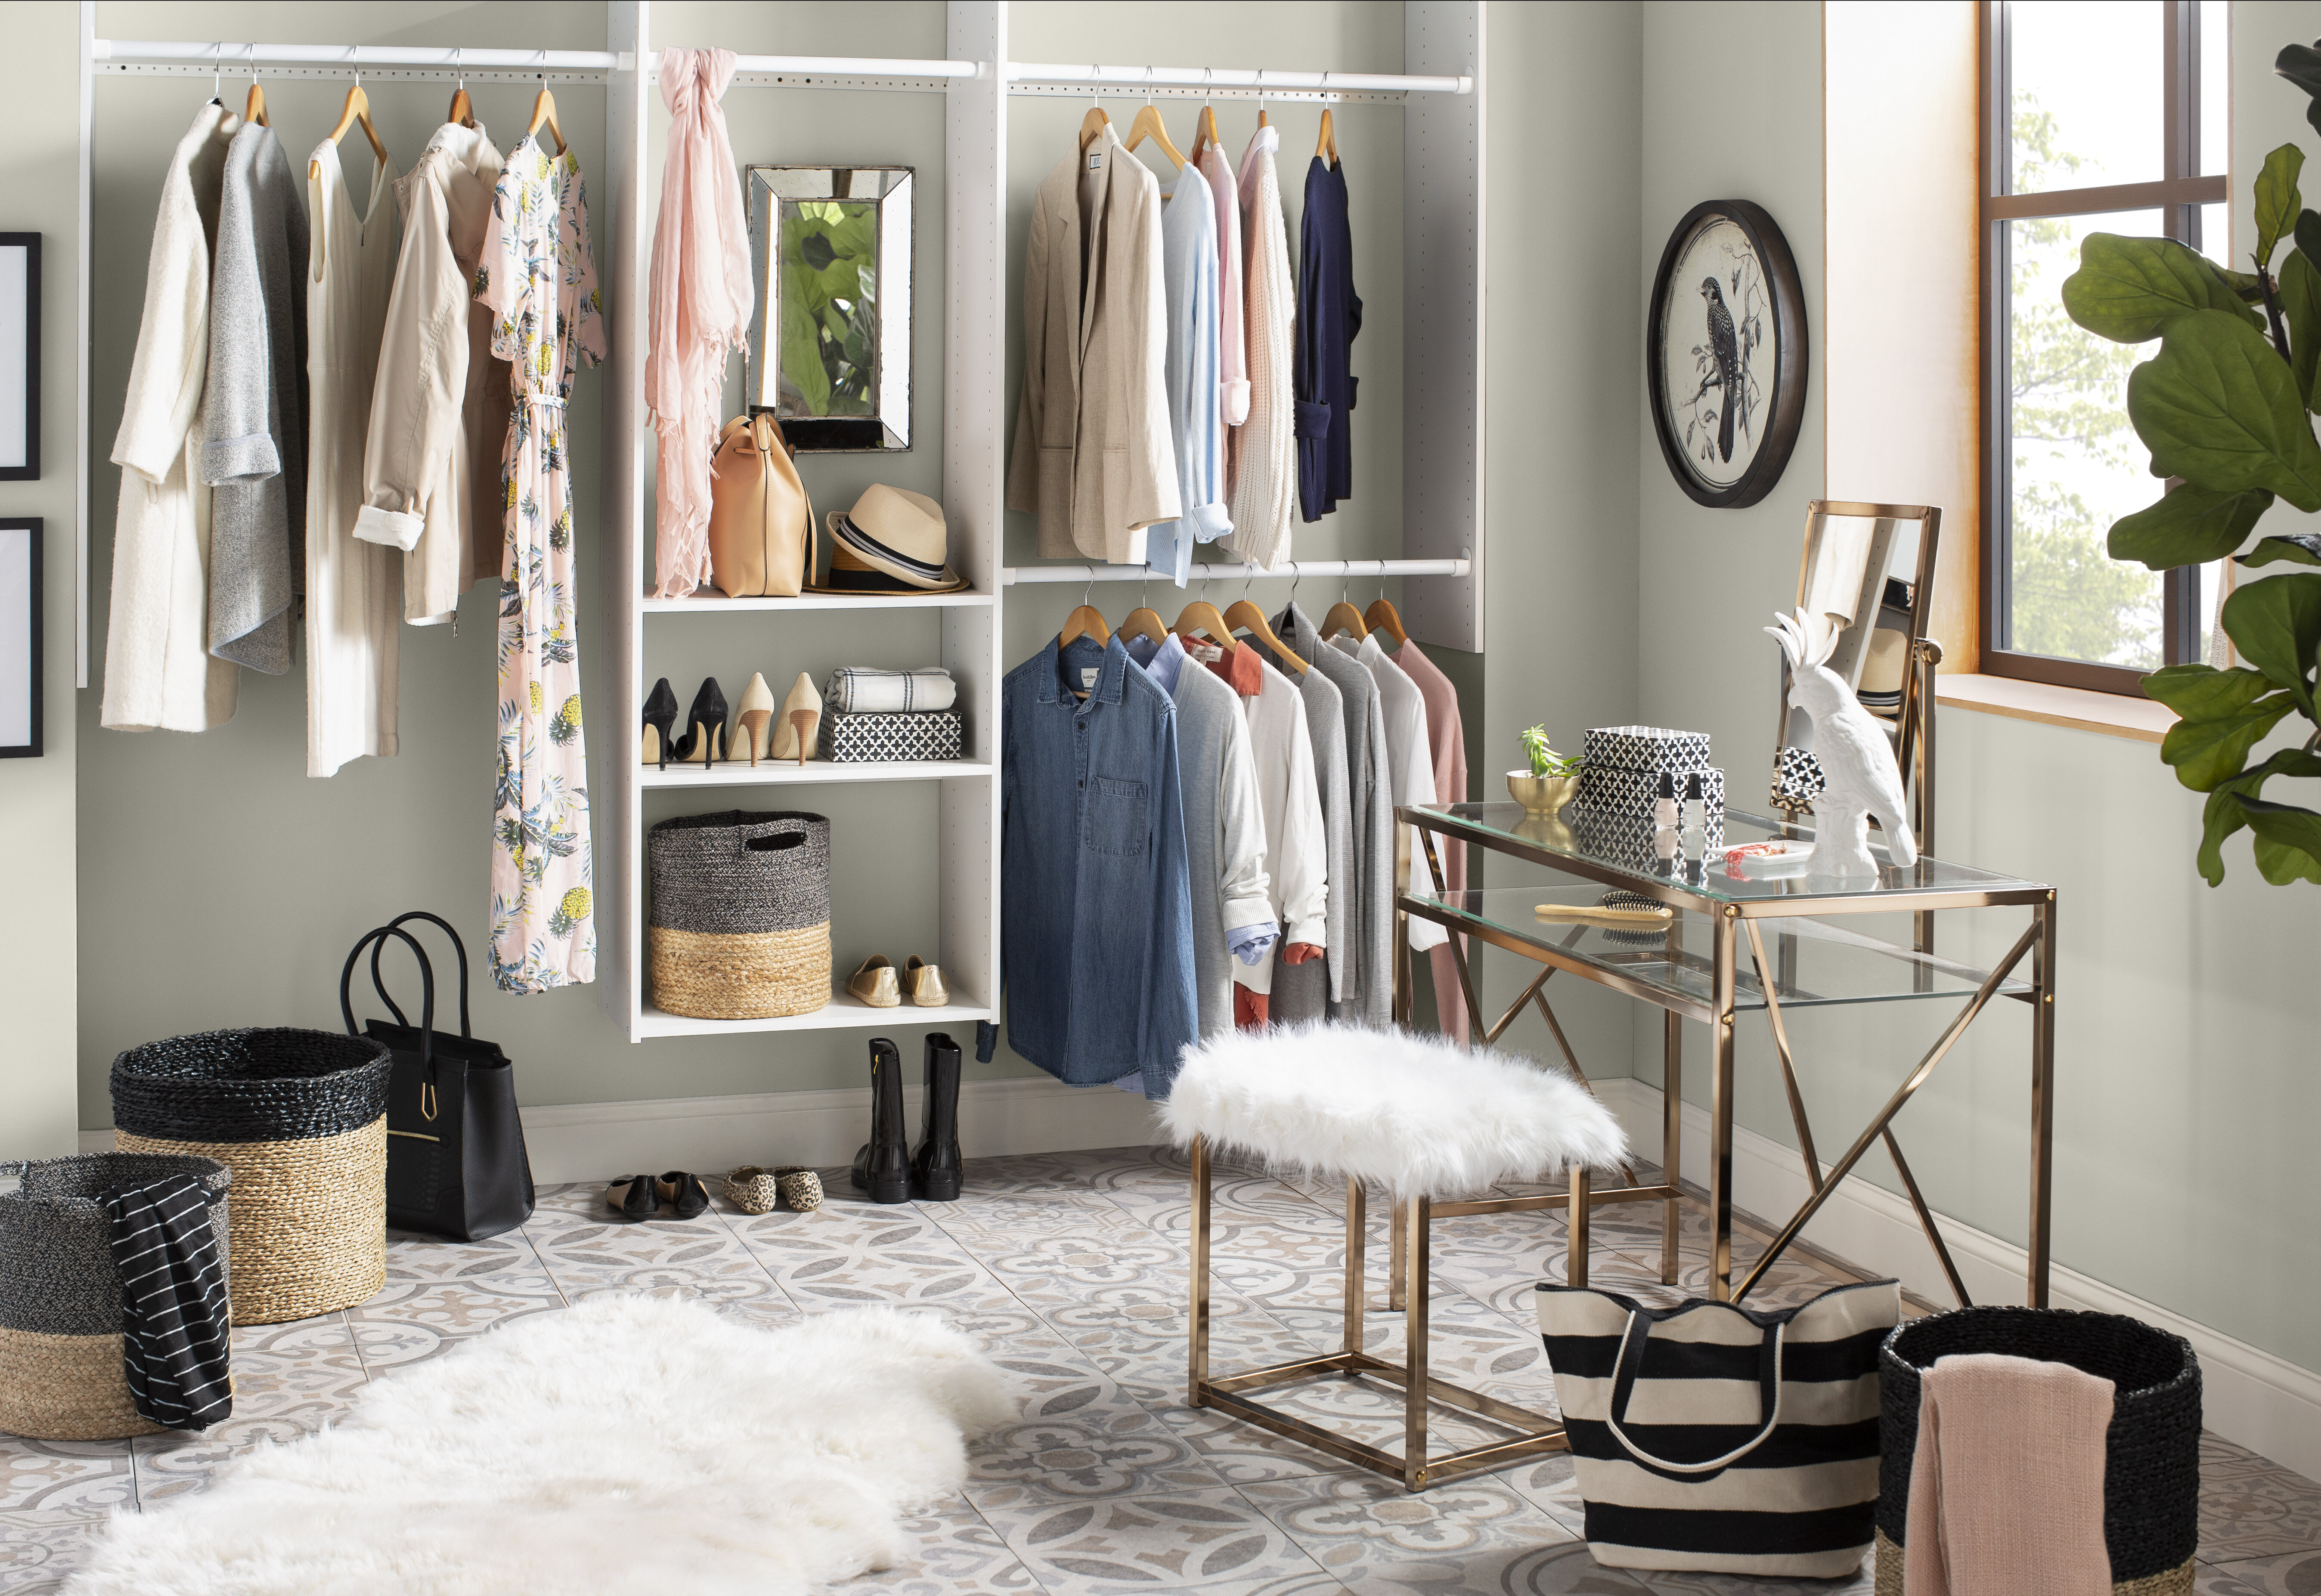 Small Closet Ideas: How to Maximize Your Space  Wayfair